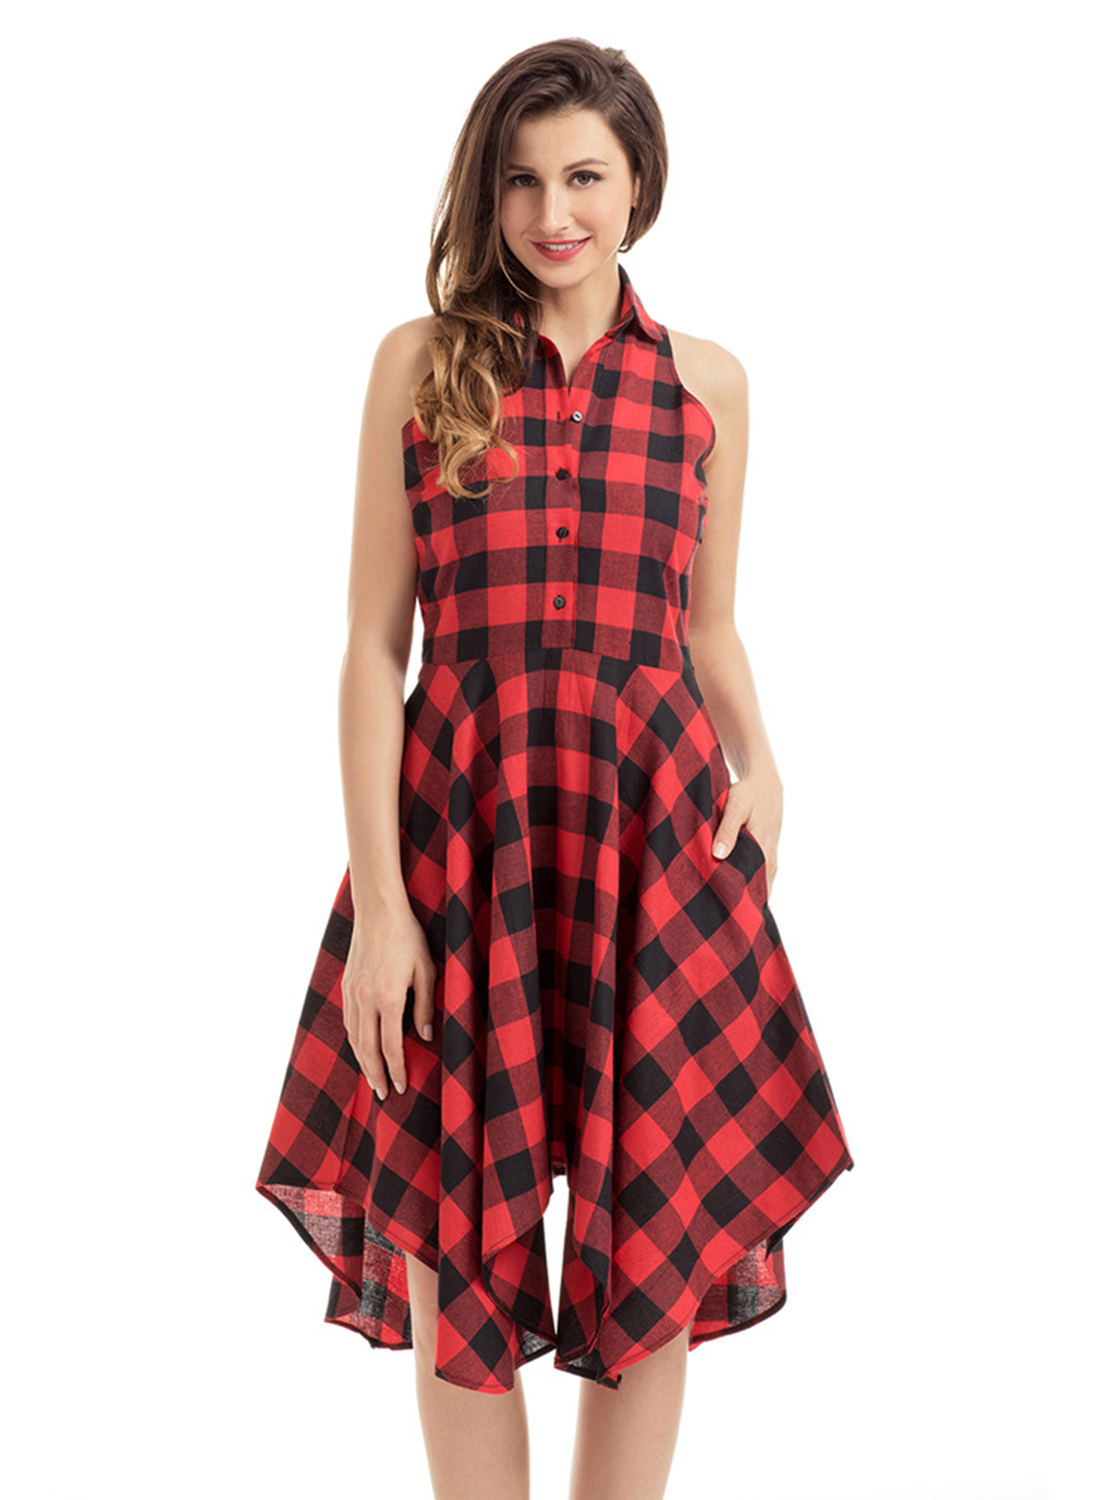 kaifeiya Women Summer Sleeveless Halter Neck Tartan Vintage Dress Female Dress with US $ / piece Free Shipping. Orders (0) New. PlusSize women clothings Store. Add to Wish List. 3 Colors Available. SIJANEWEDDING Sweetheart Neck Tartan Print Sleeveless Beach Dress Party Dress.